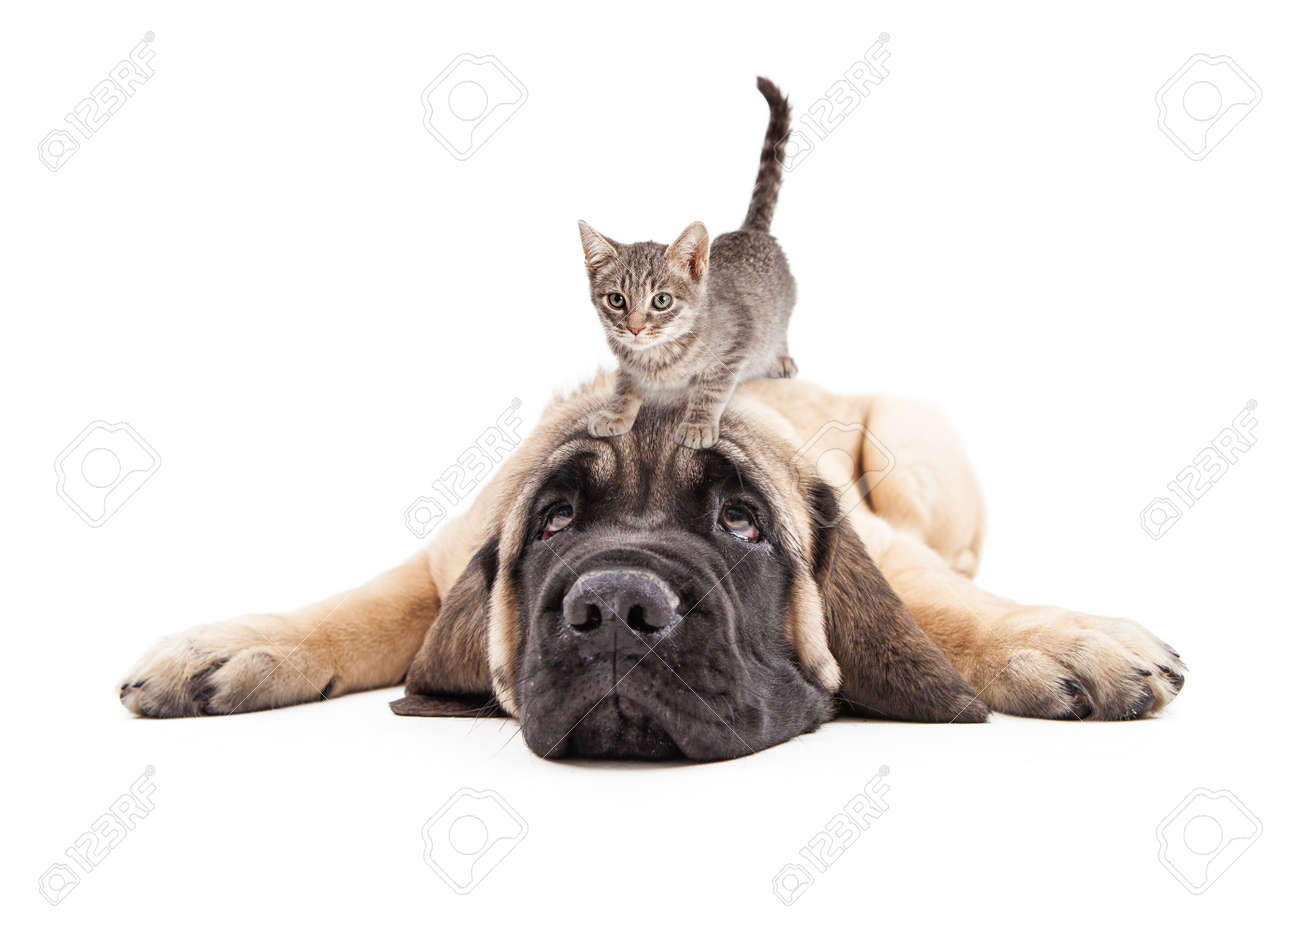 Funny photo of patient a Mastiff puppy laying down with a little kitten on his head - 53900867